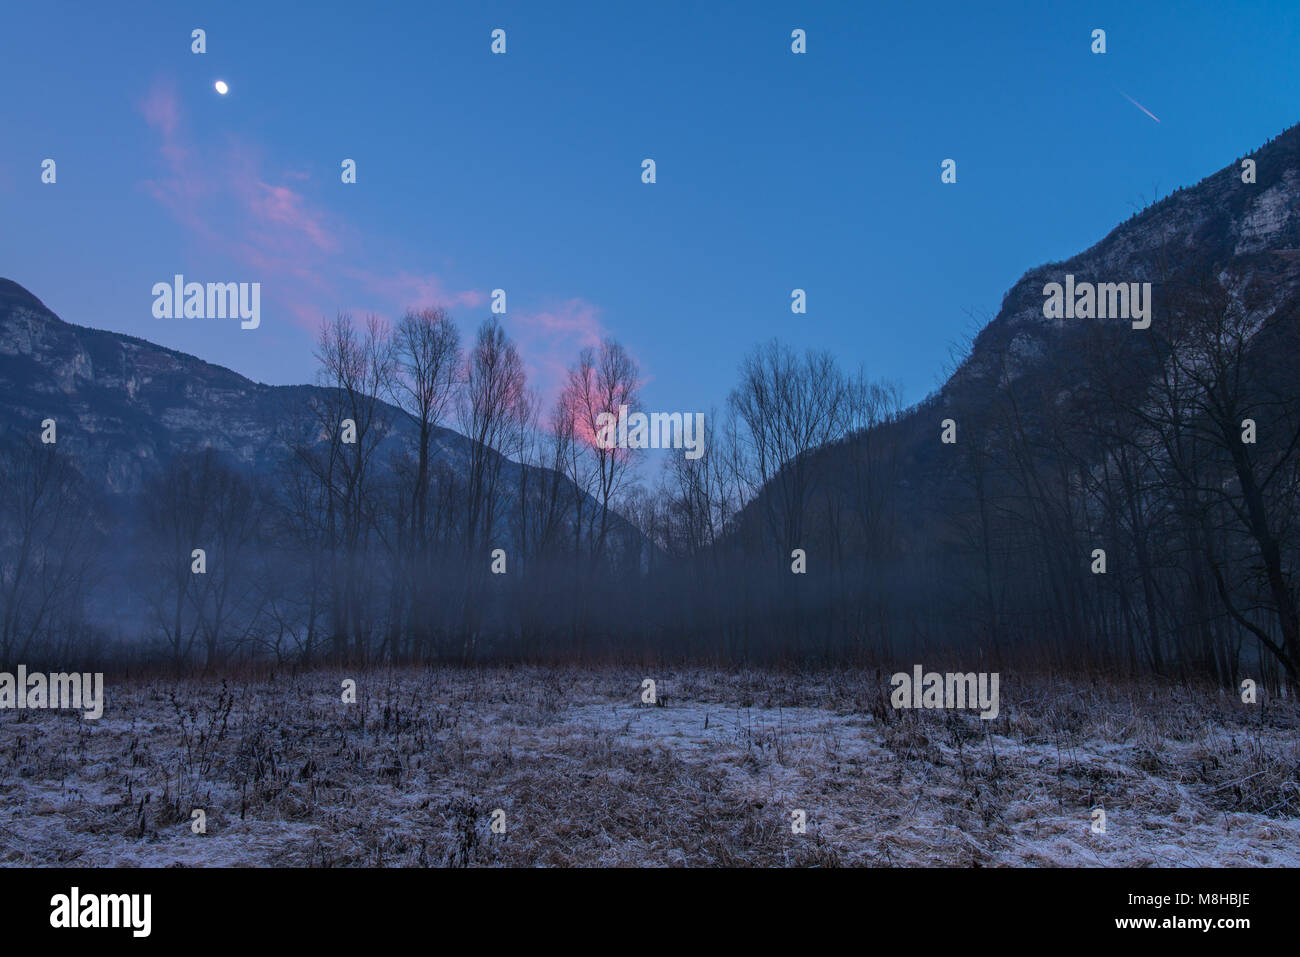 Spooky woods enveloped by a thin haze at sunset. Imposing mountains surrounding the meadow, frost on the ground, - Stock Image